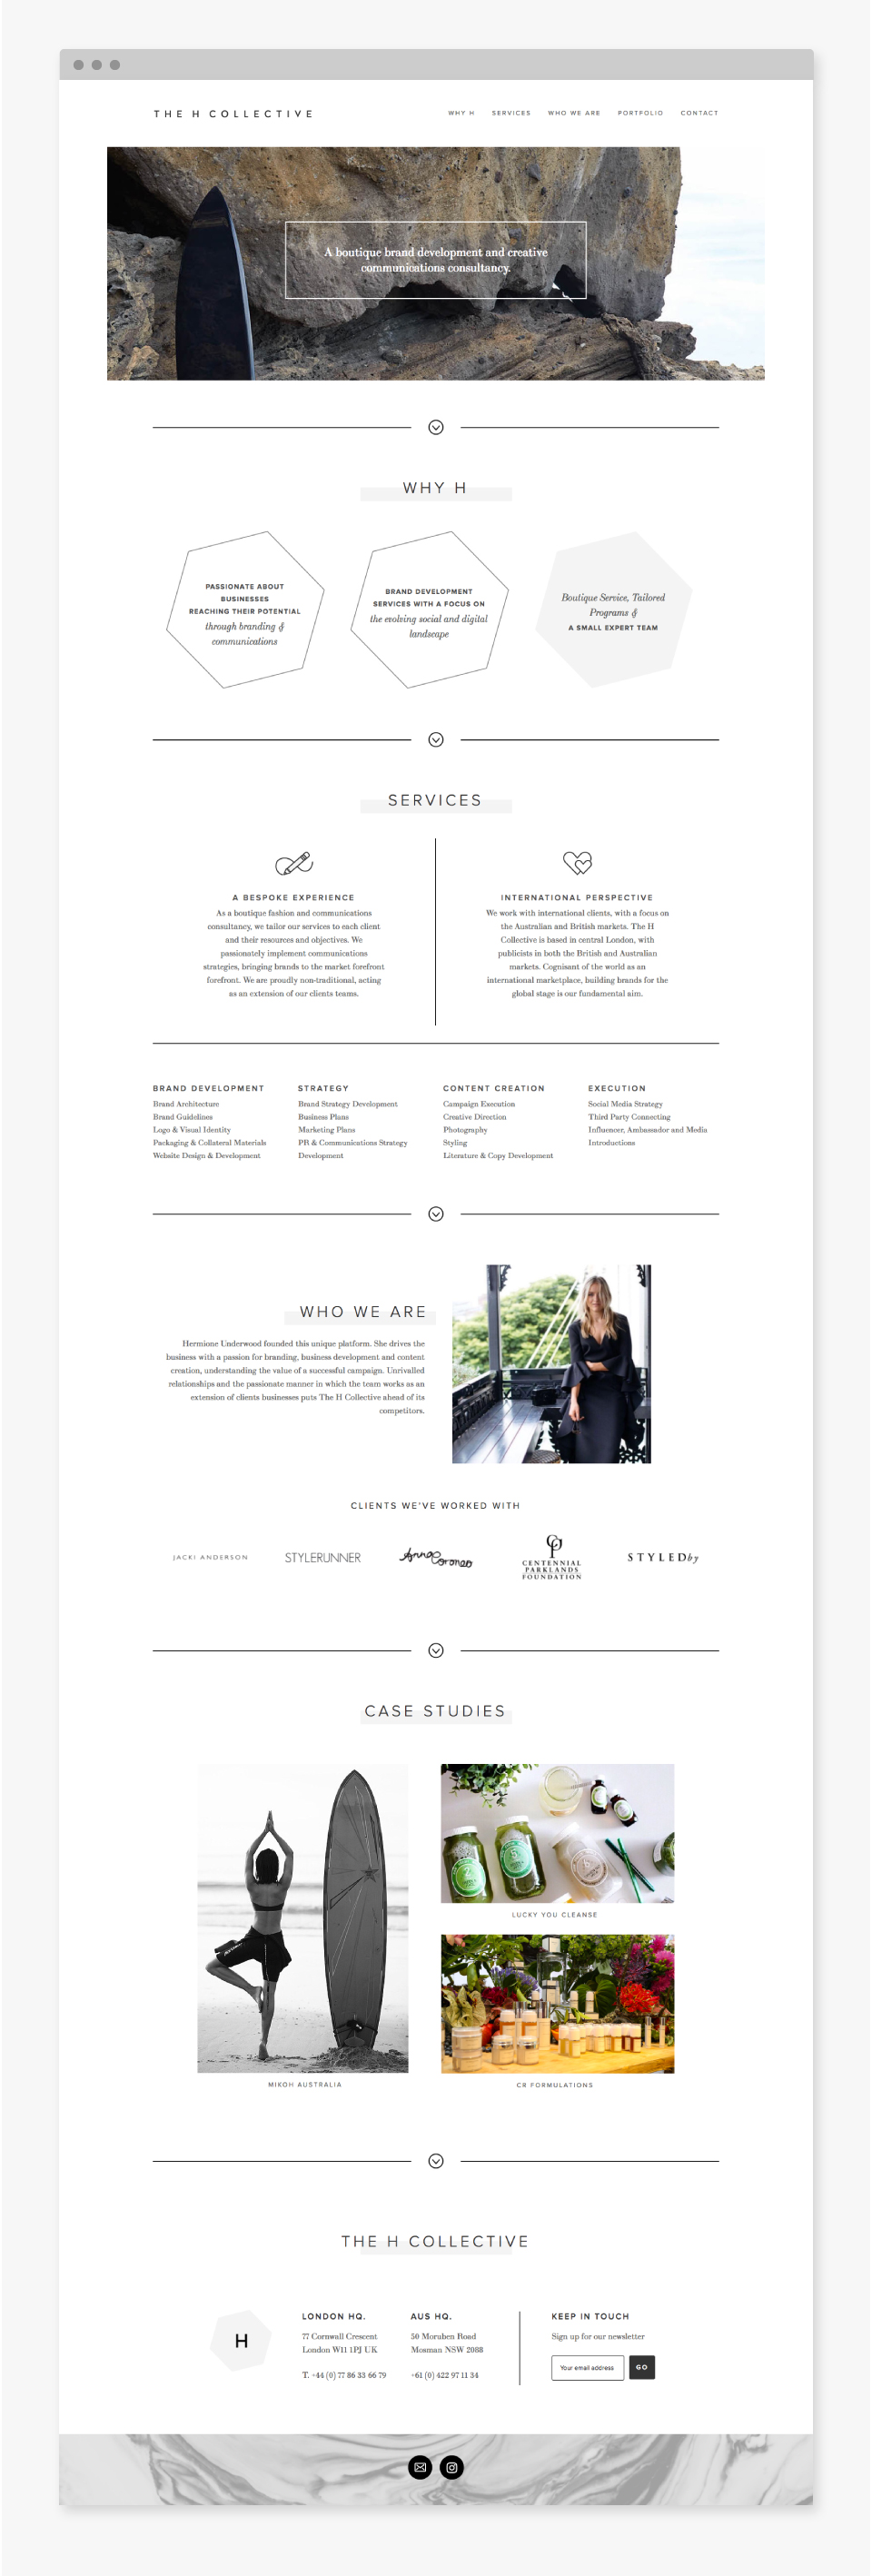 The H Collective Website Design - Idyllic Creative